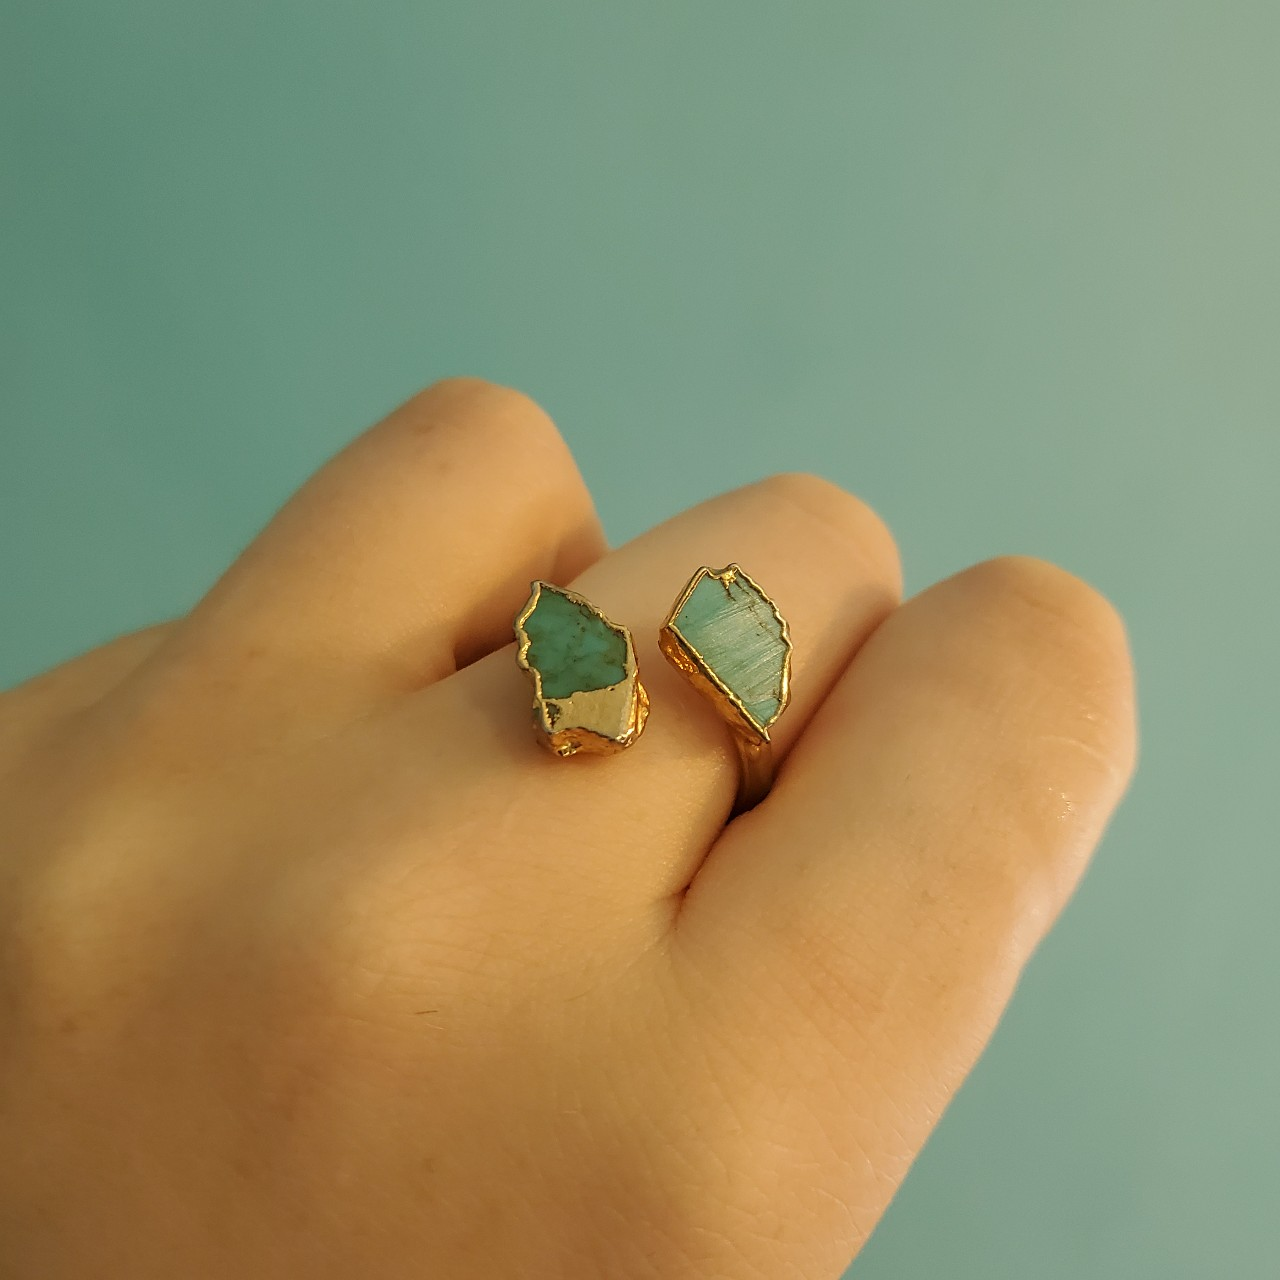 Product Image 1 - FAUX GOLD AND TURQUOISE RING